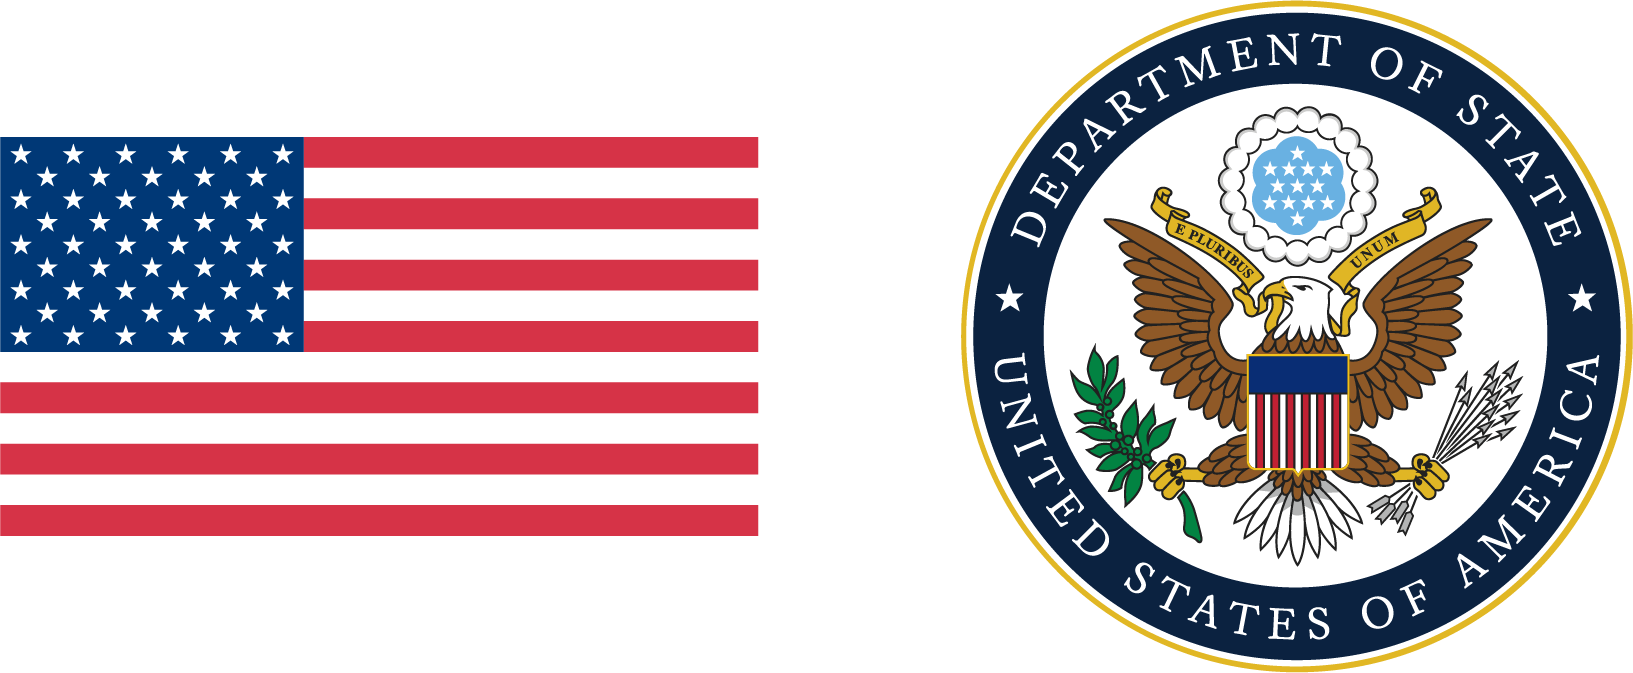 Flag and Seal